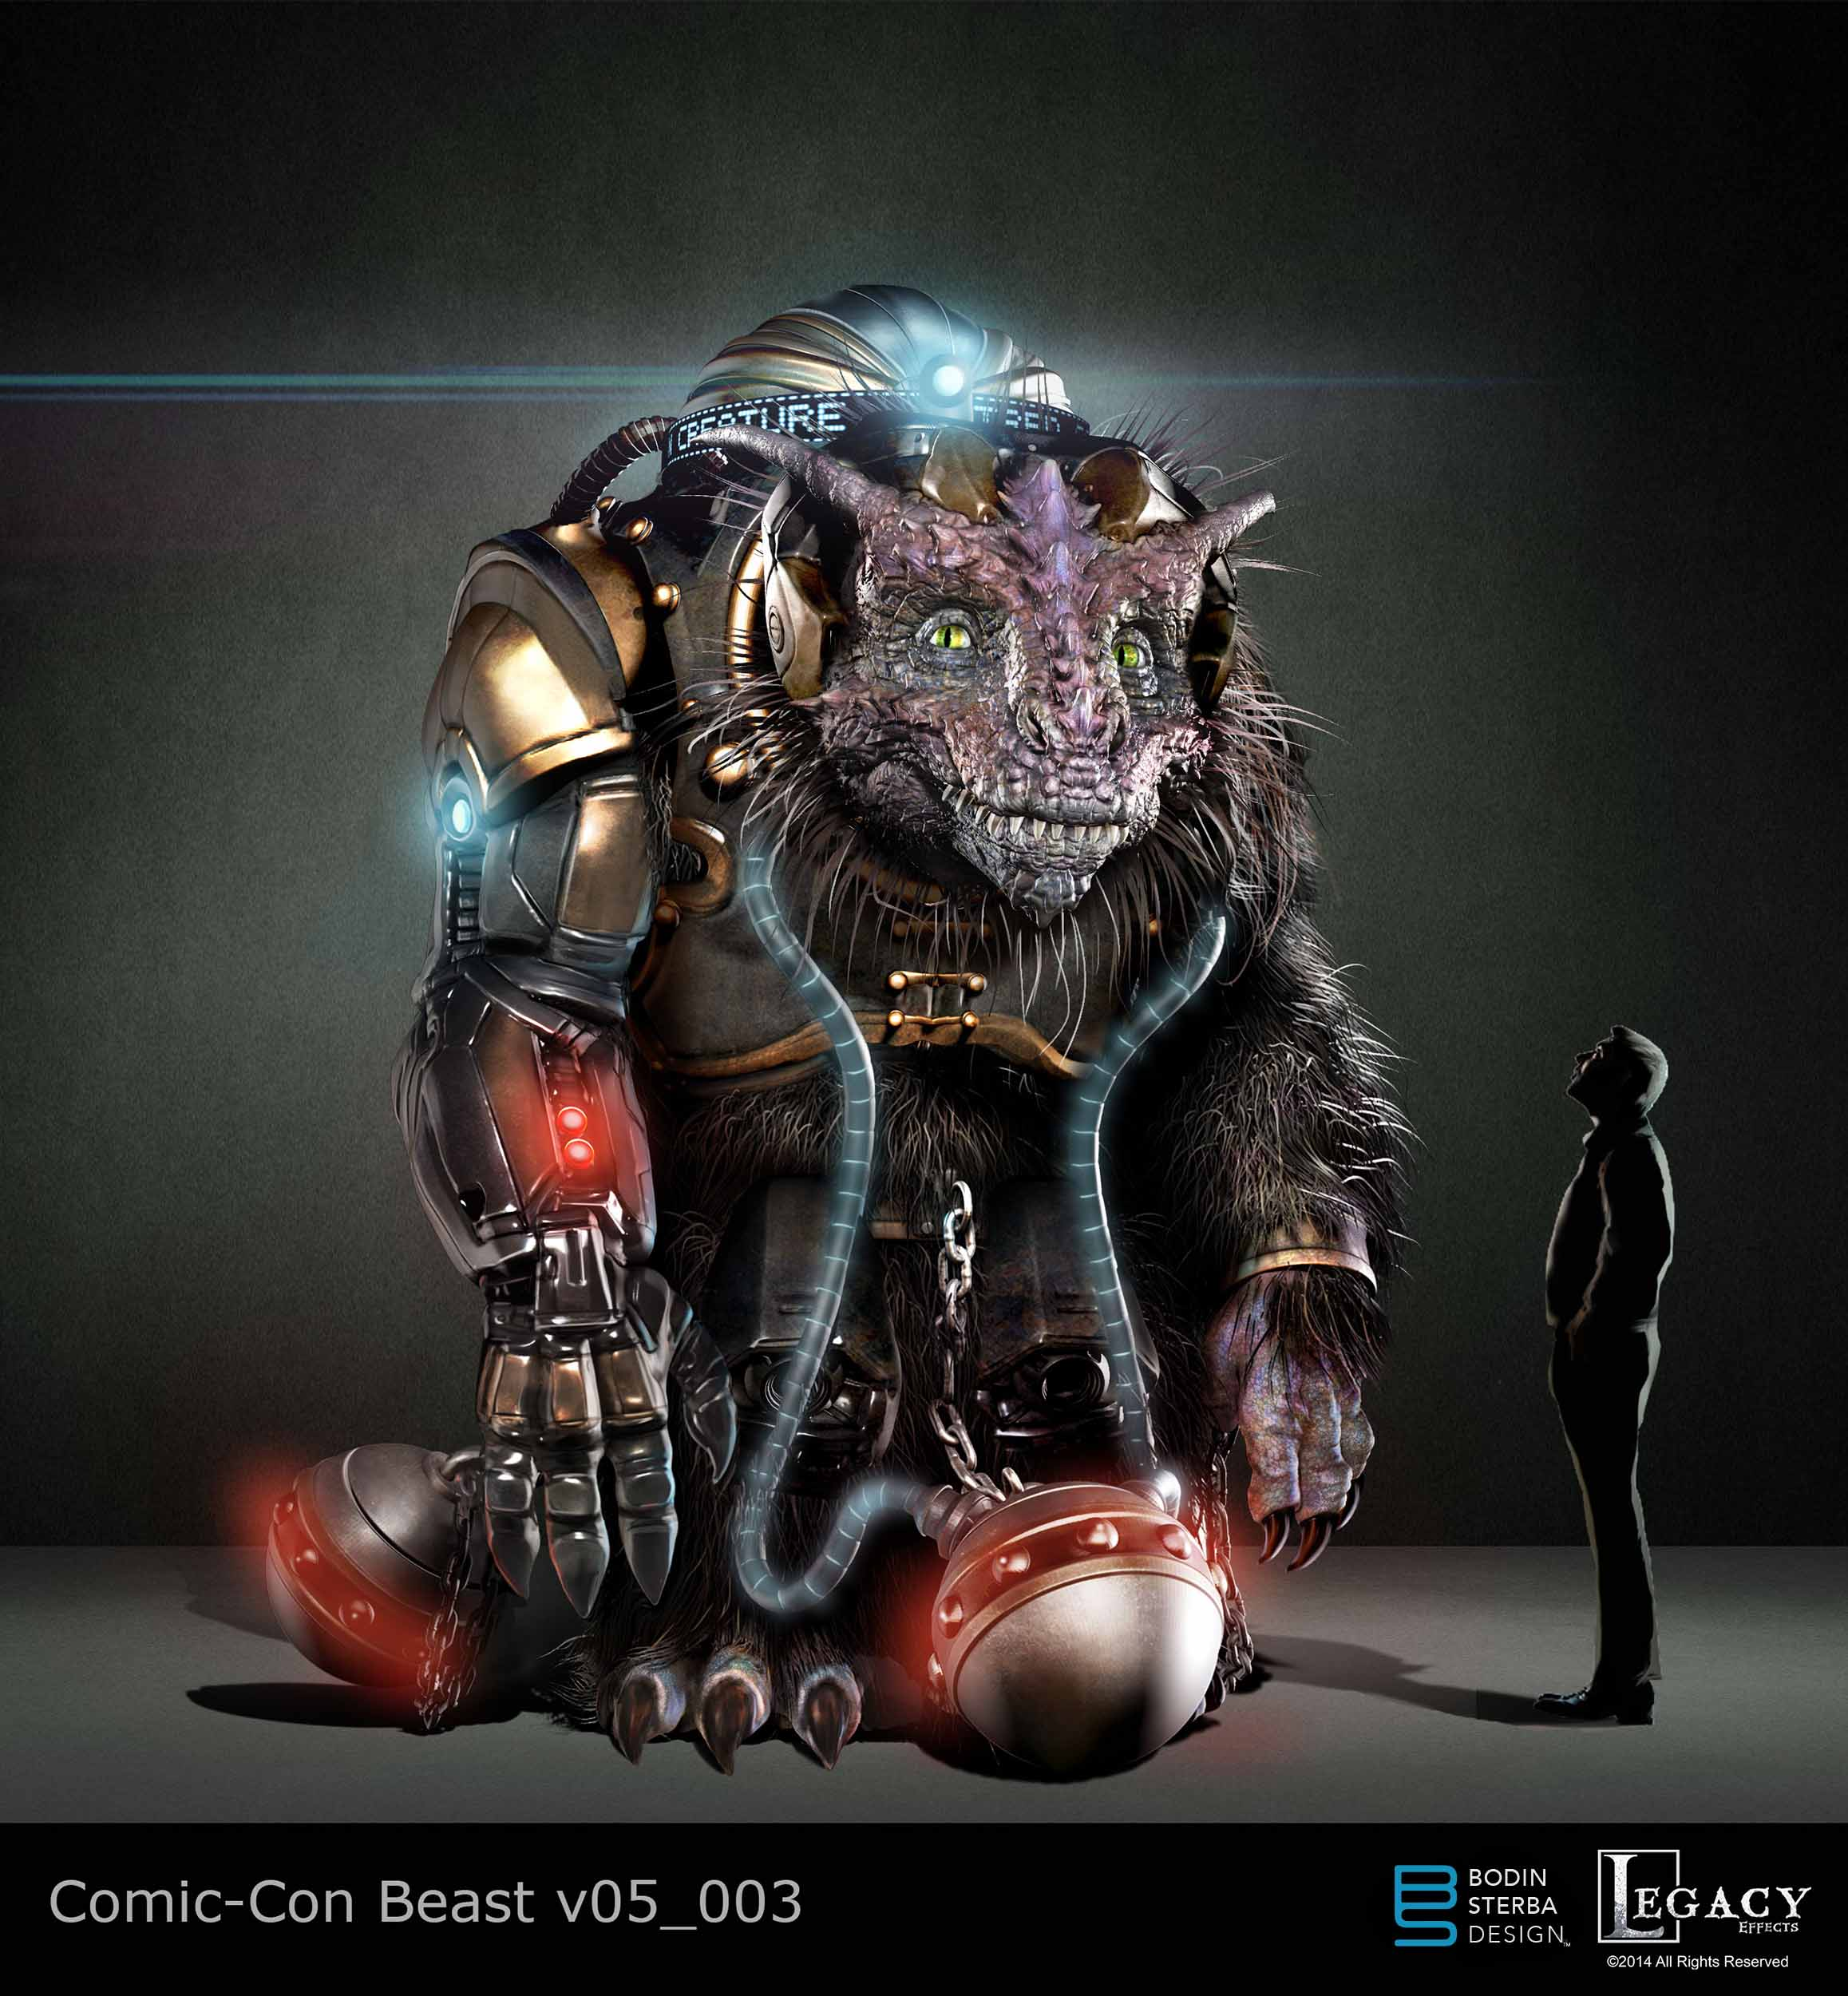 Here is the winning design I created of the Giant Creature for Comic-Con 2014